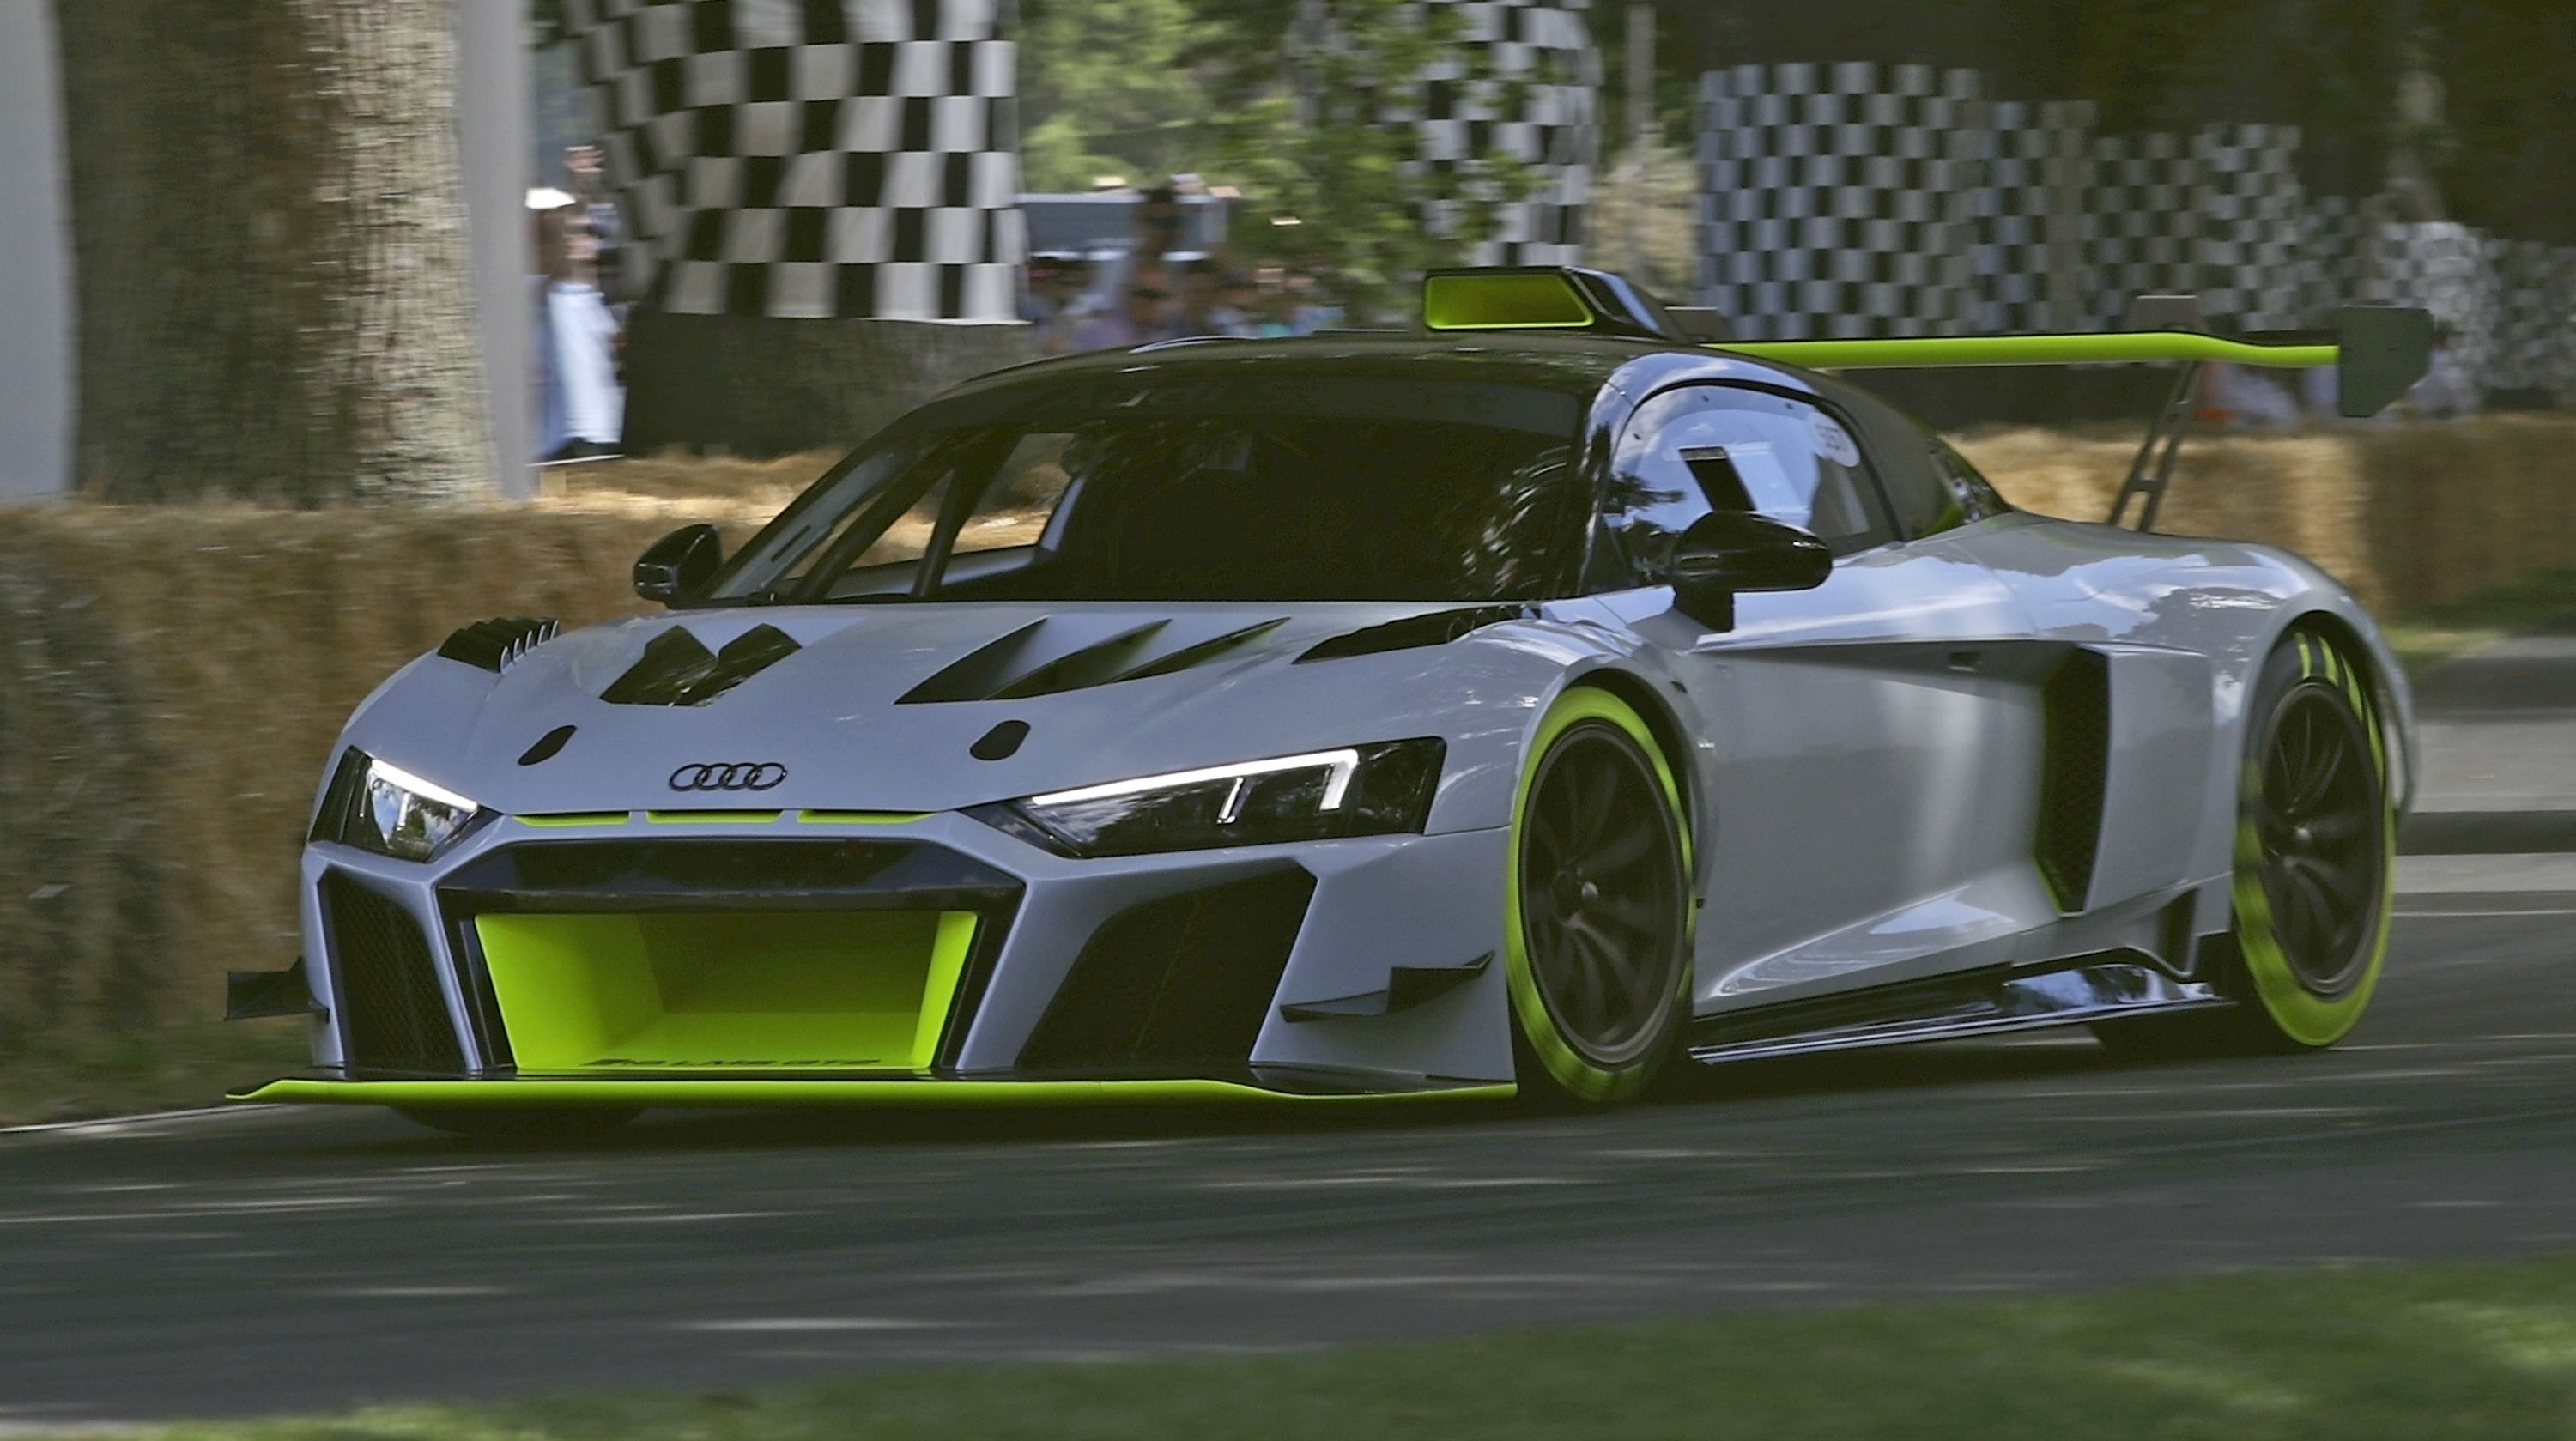 The 2020 Audi R8 Lms Gt2 Is The R8 We Deserve For The Road But Can T Have Audi Audi R8 Spyder Audi R8